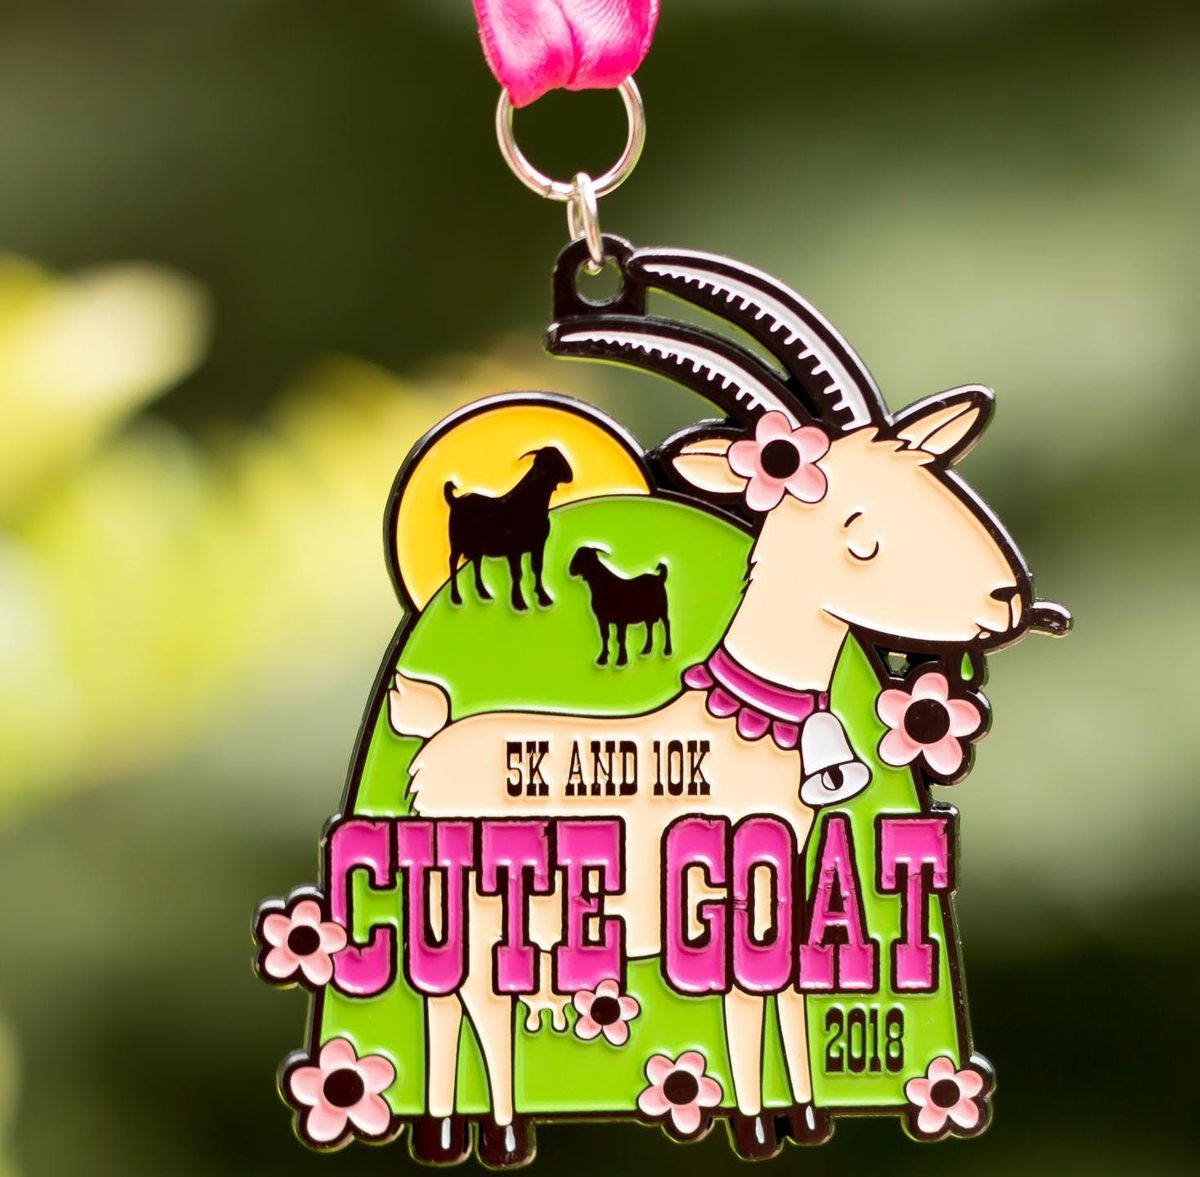 Now Only 10 Cute Goat 5K & 10K - Miami